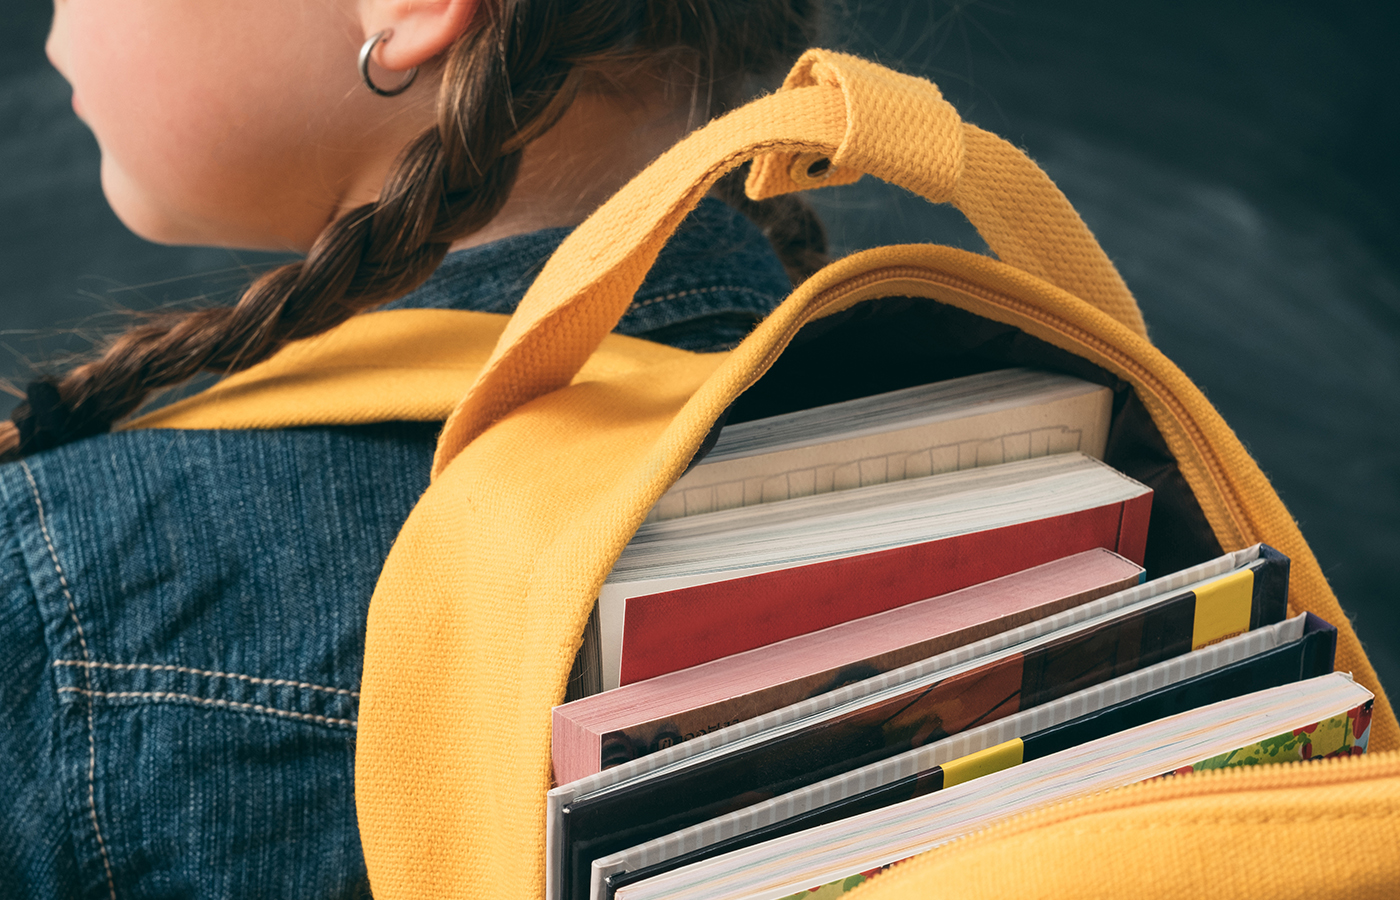 Over-Loaded Backpacks Can Hurt Kids